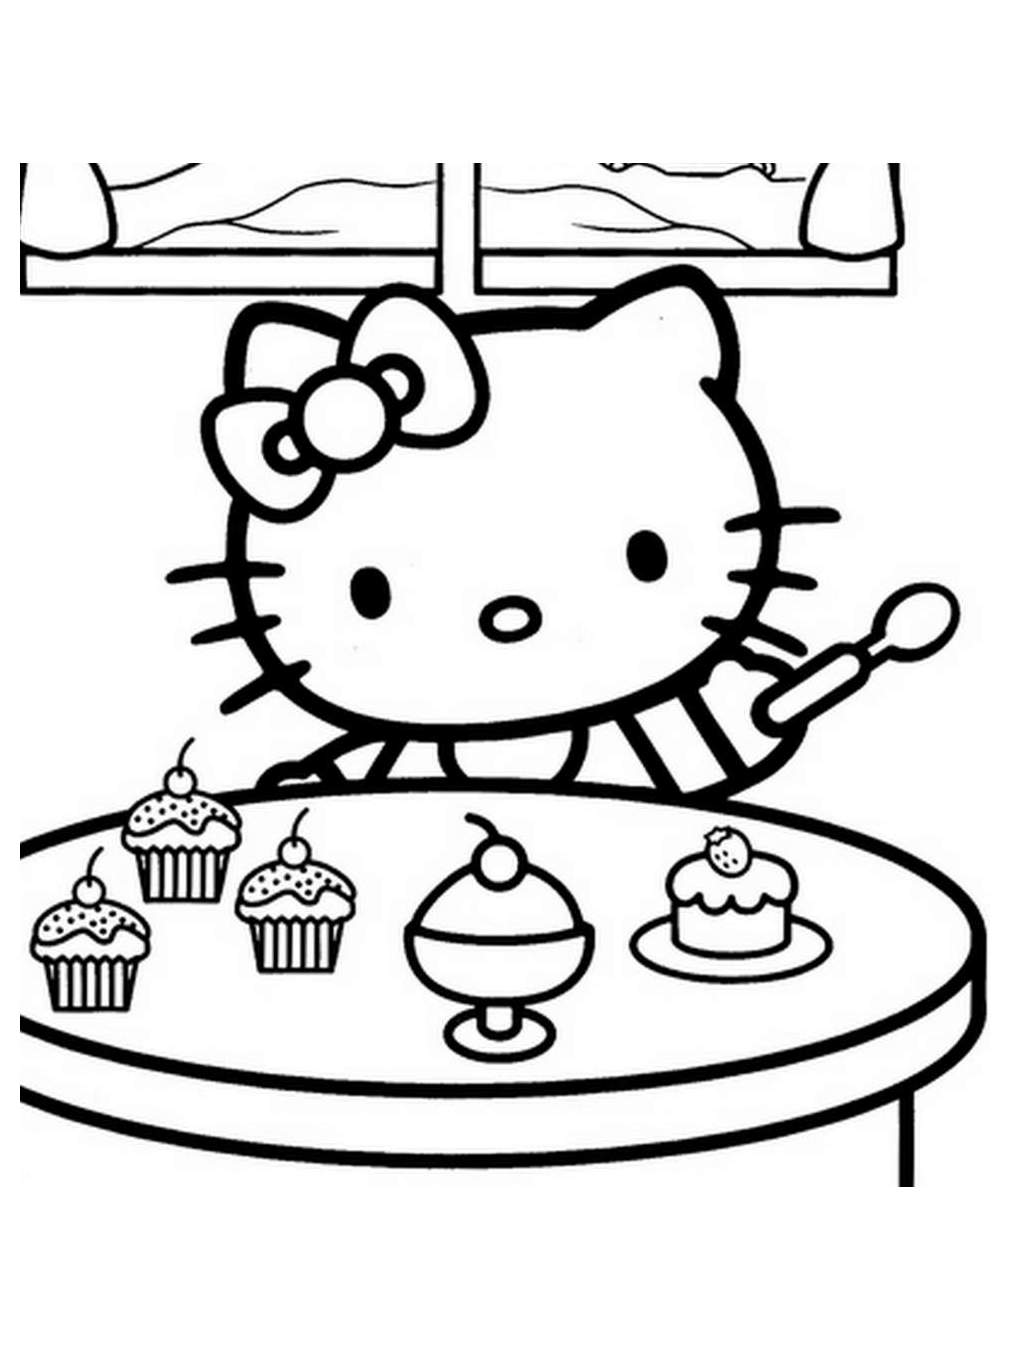 hello kitty images to color hello kitty coloring play free coloring game online images kitty hello color to